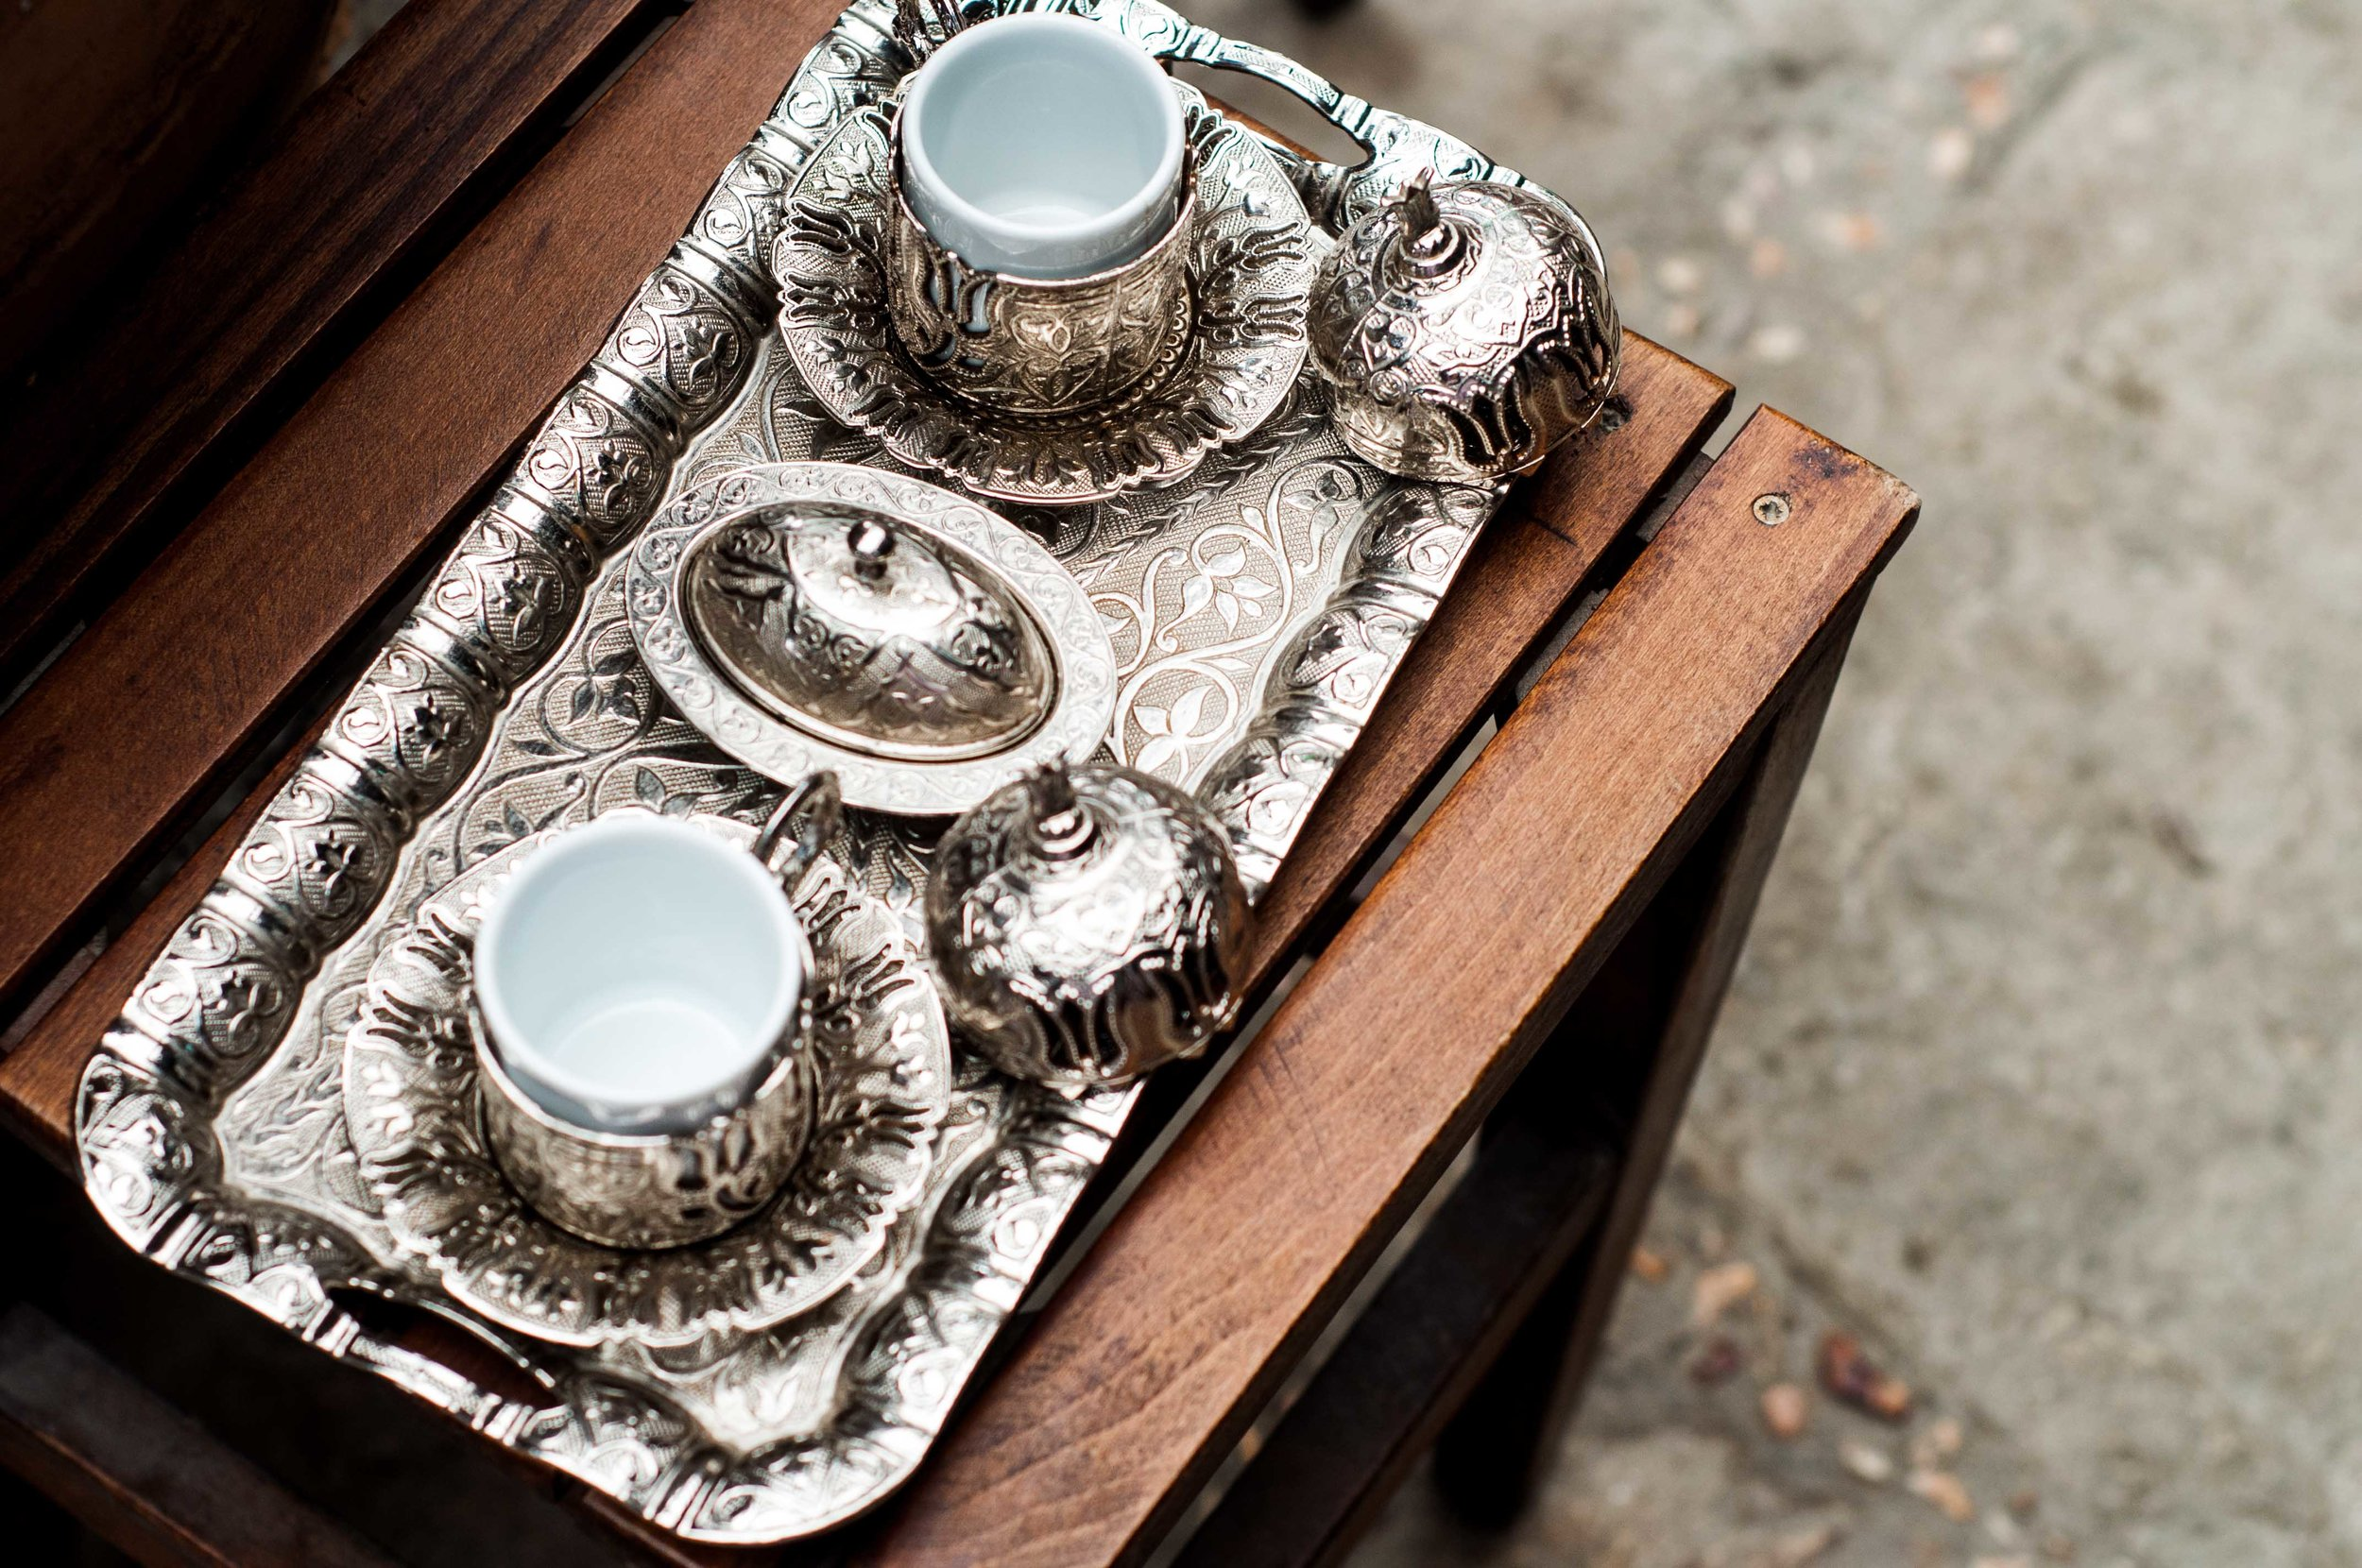 turkish-coffee-ritual.jpg